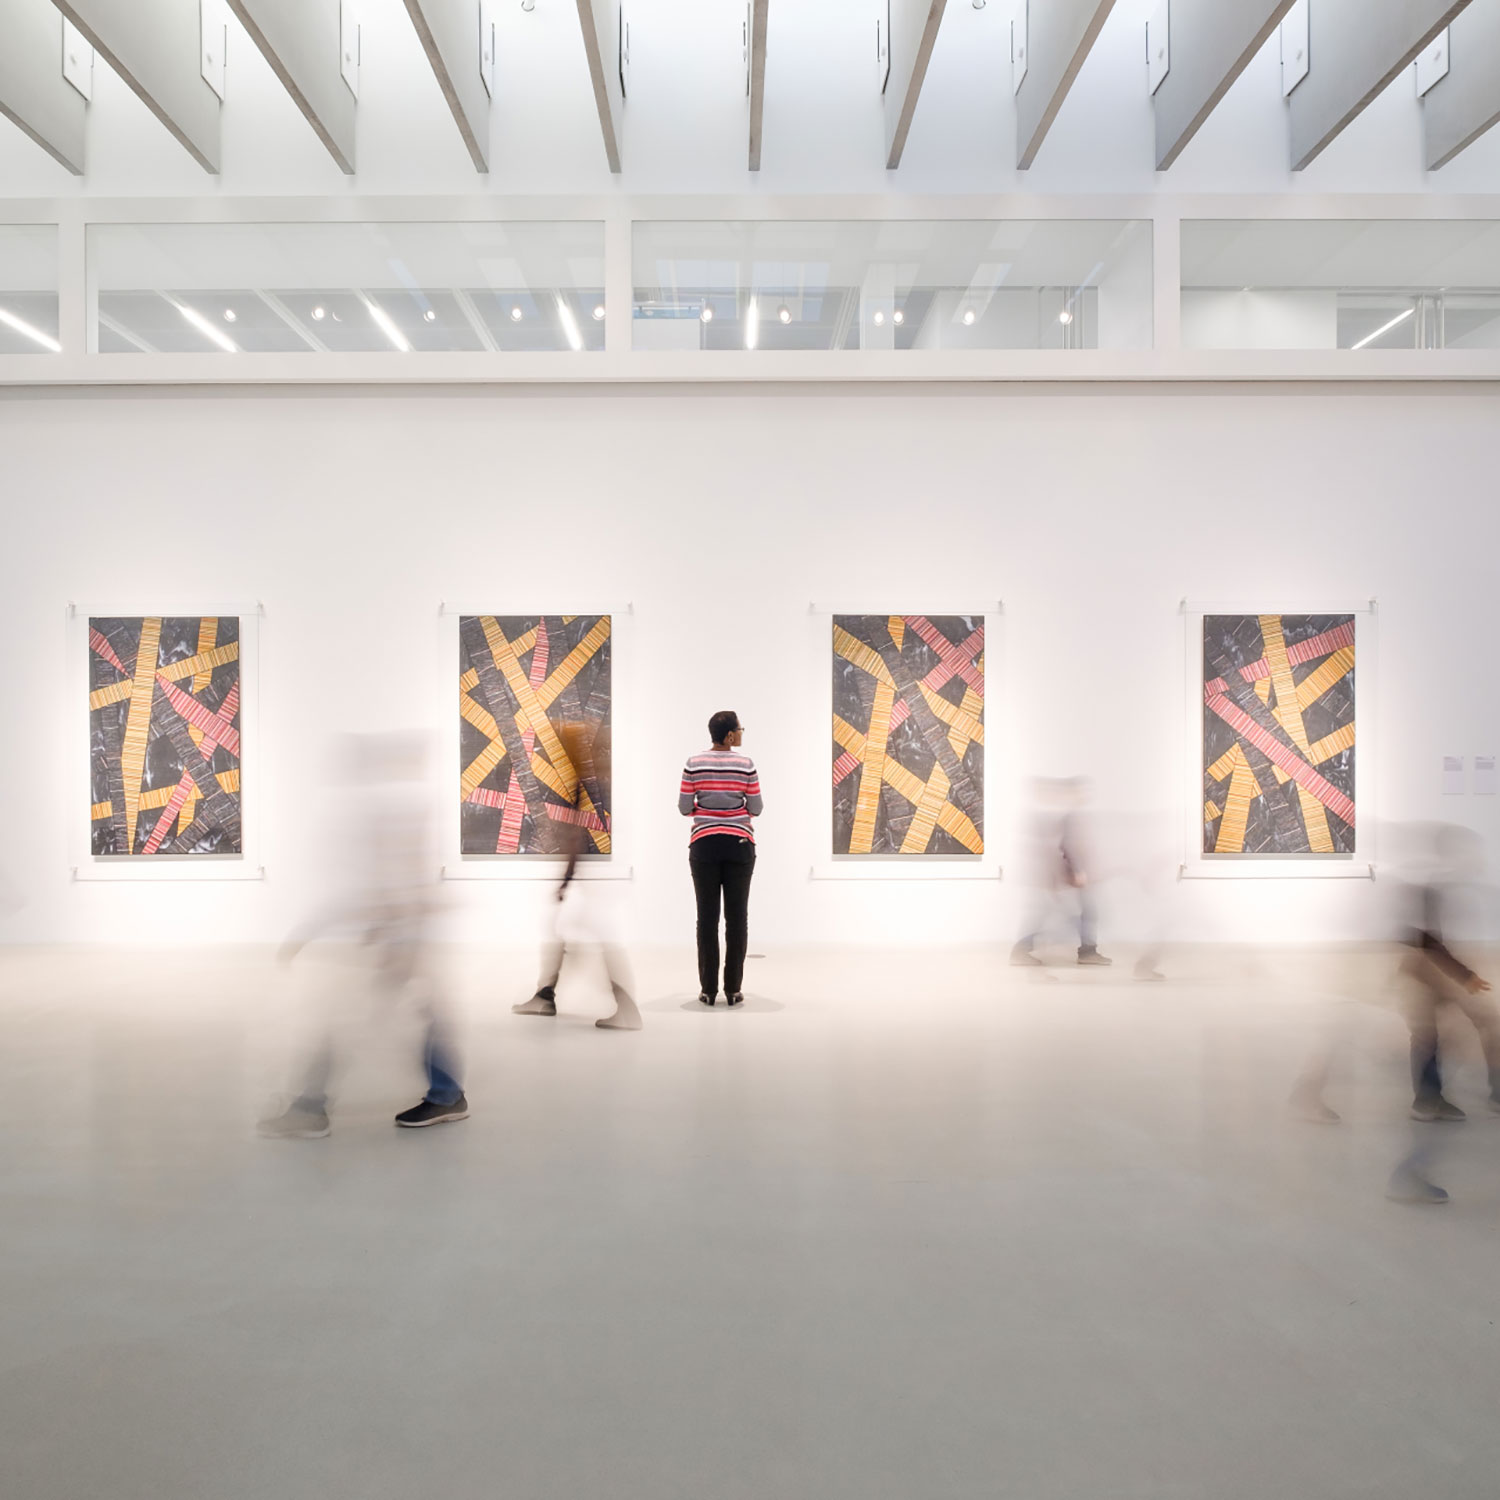 A person looks at panels of art glass hanging in a gallery.